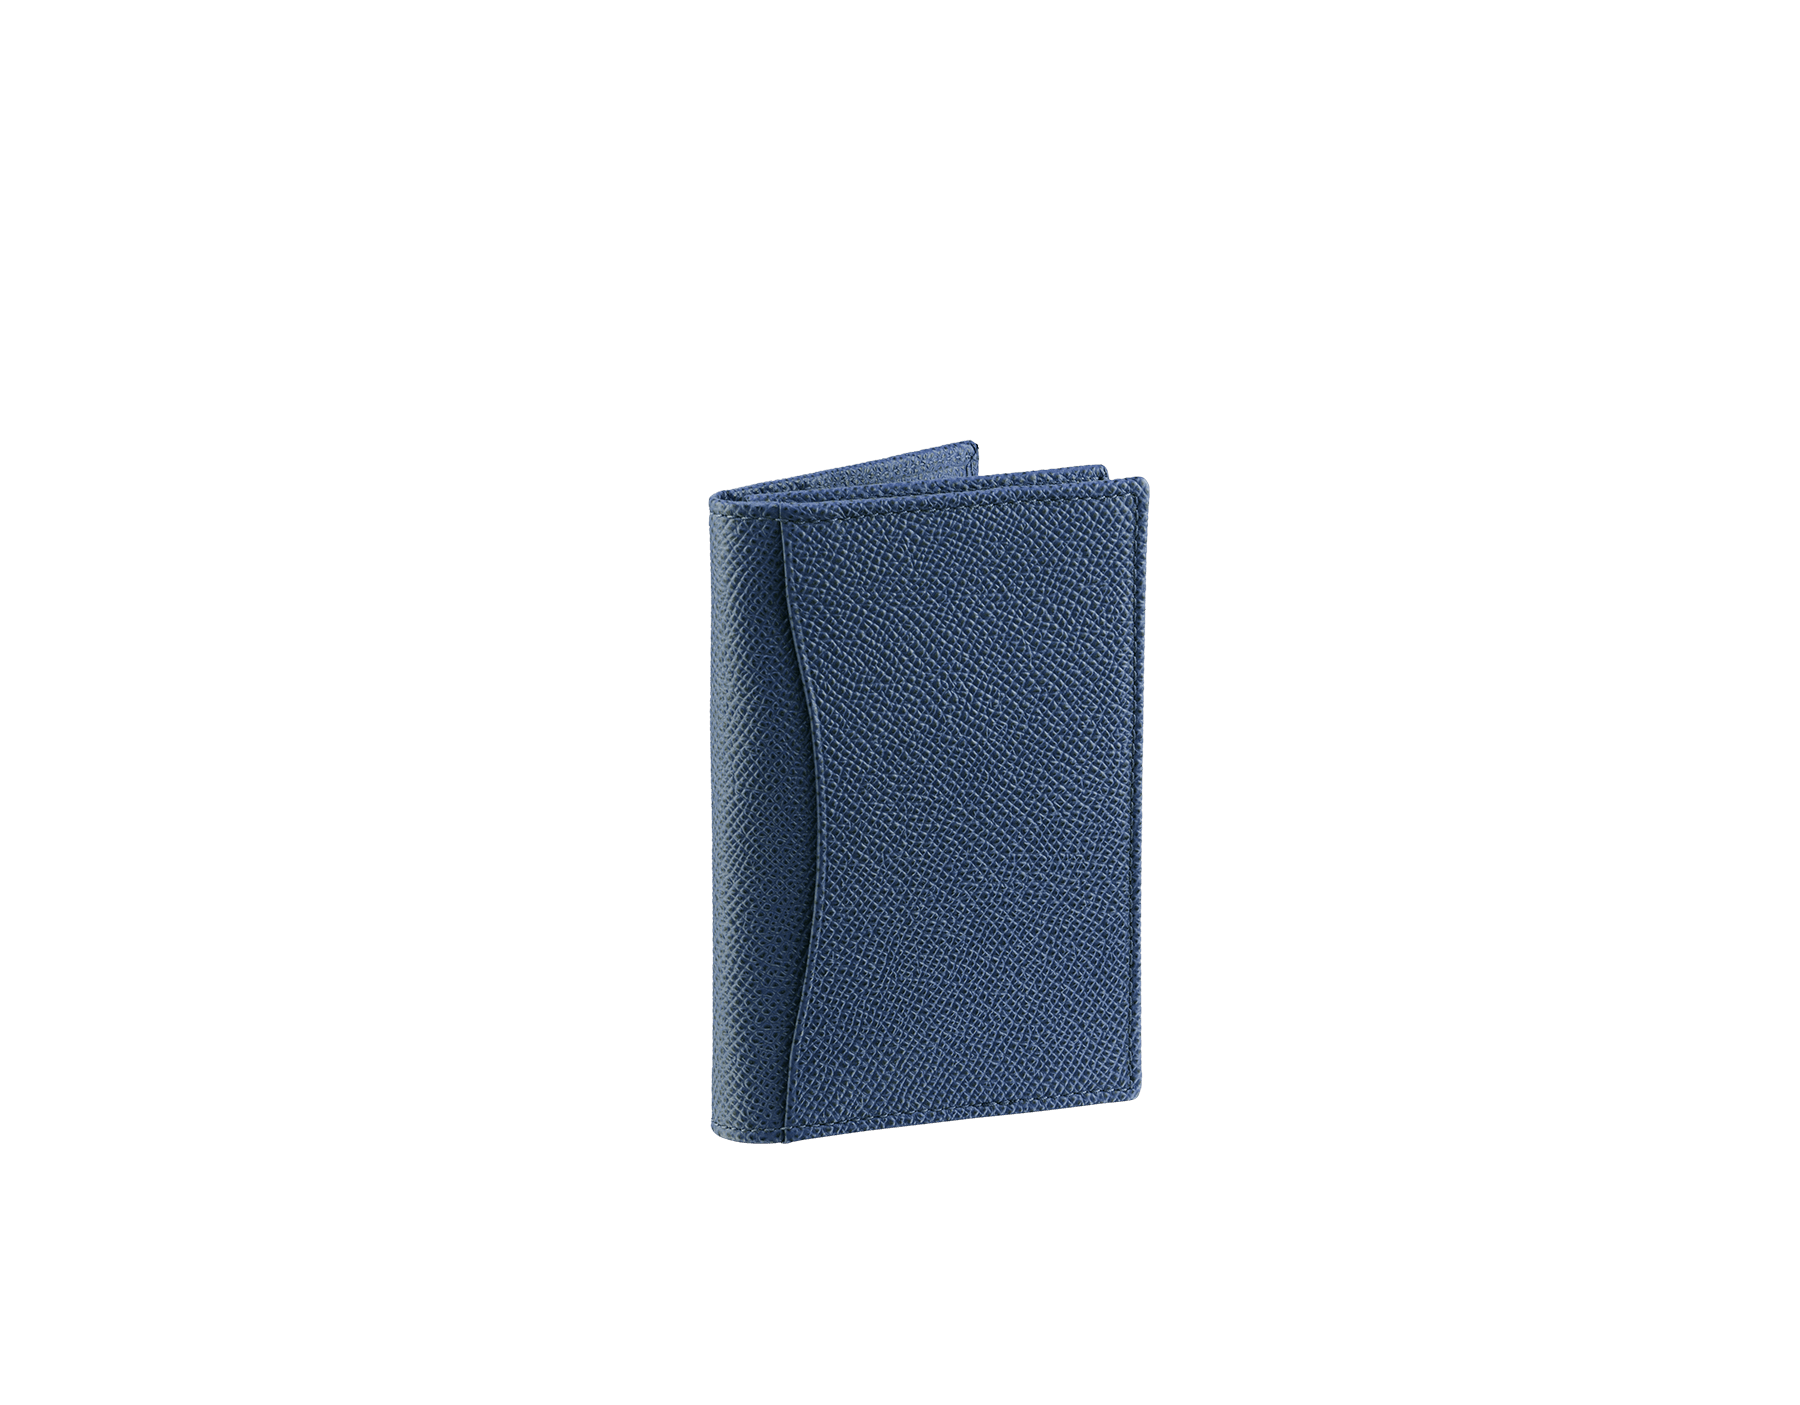 Business card holder in denim sapphire grain calf leather with brass palladium plated Bulgari Bulgari motif. Three credit card slots, one open pocket and business cards compartment. 280299 image 3